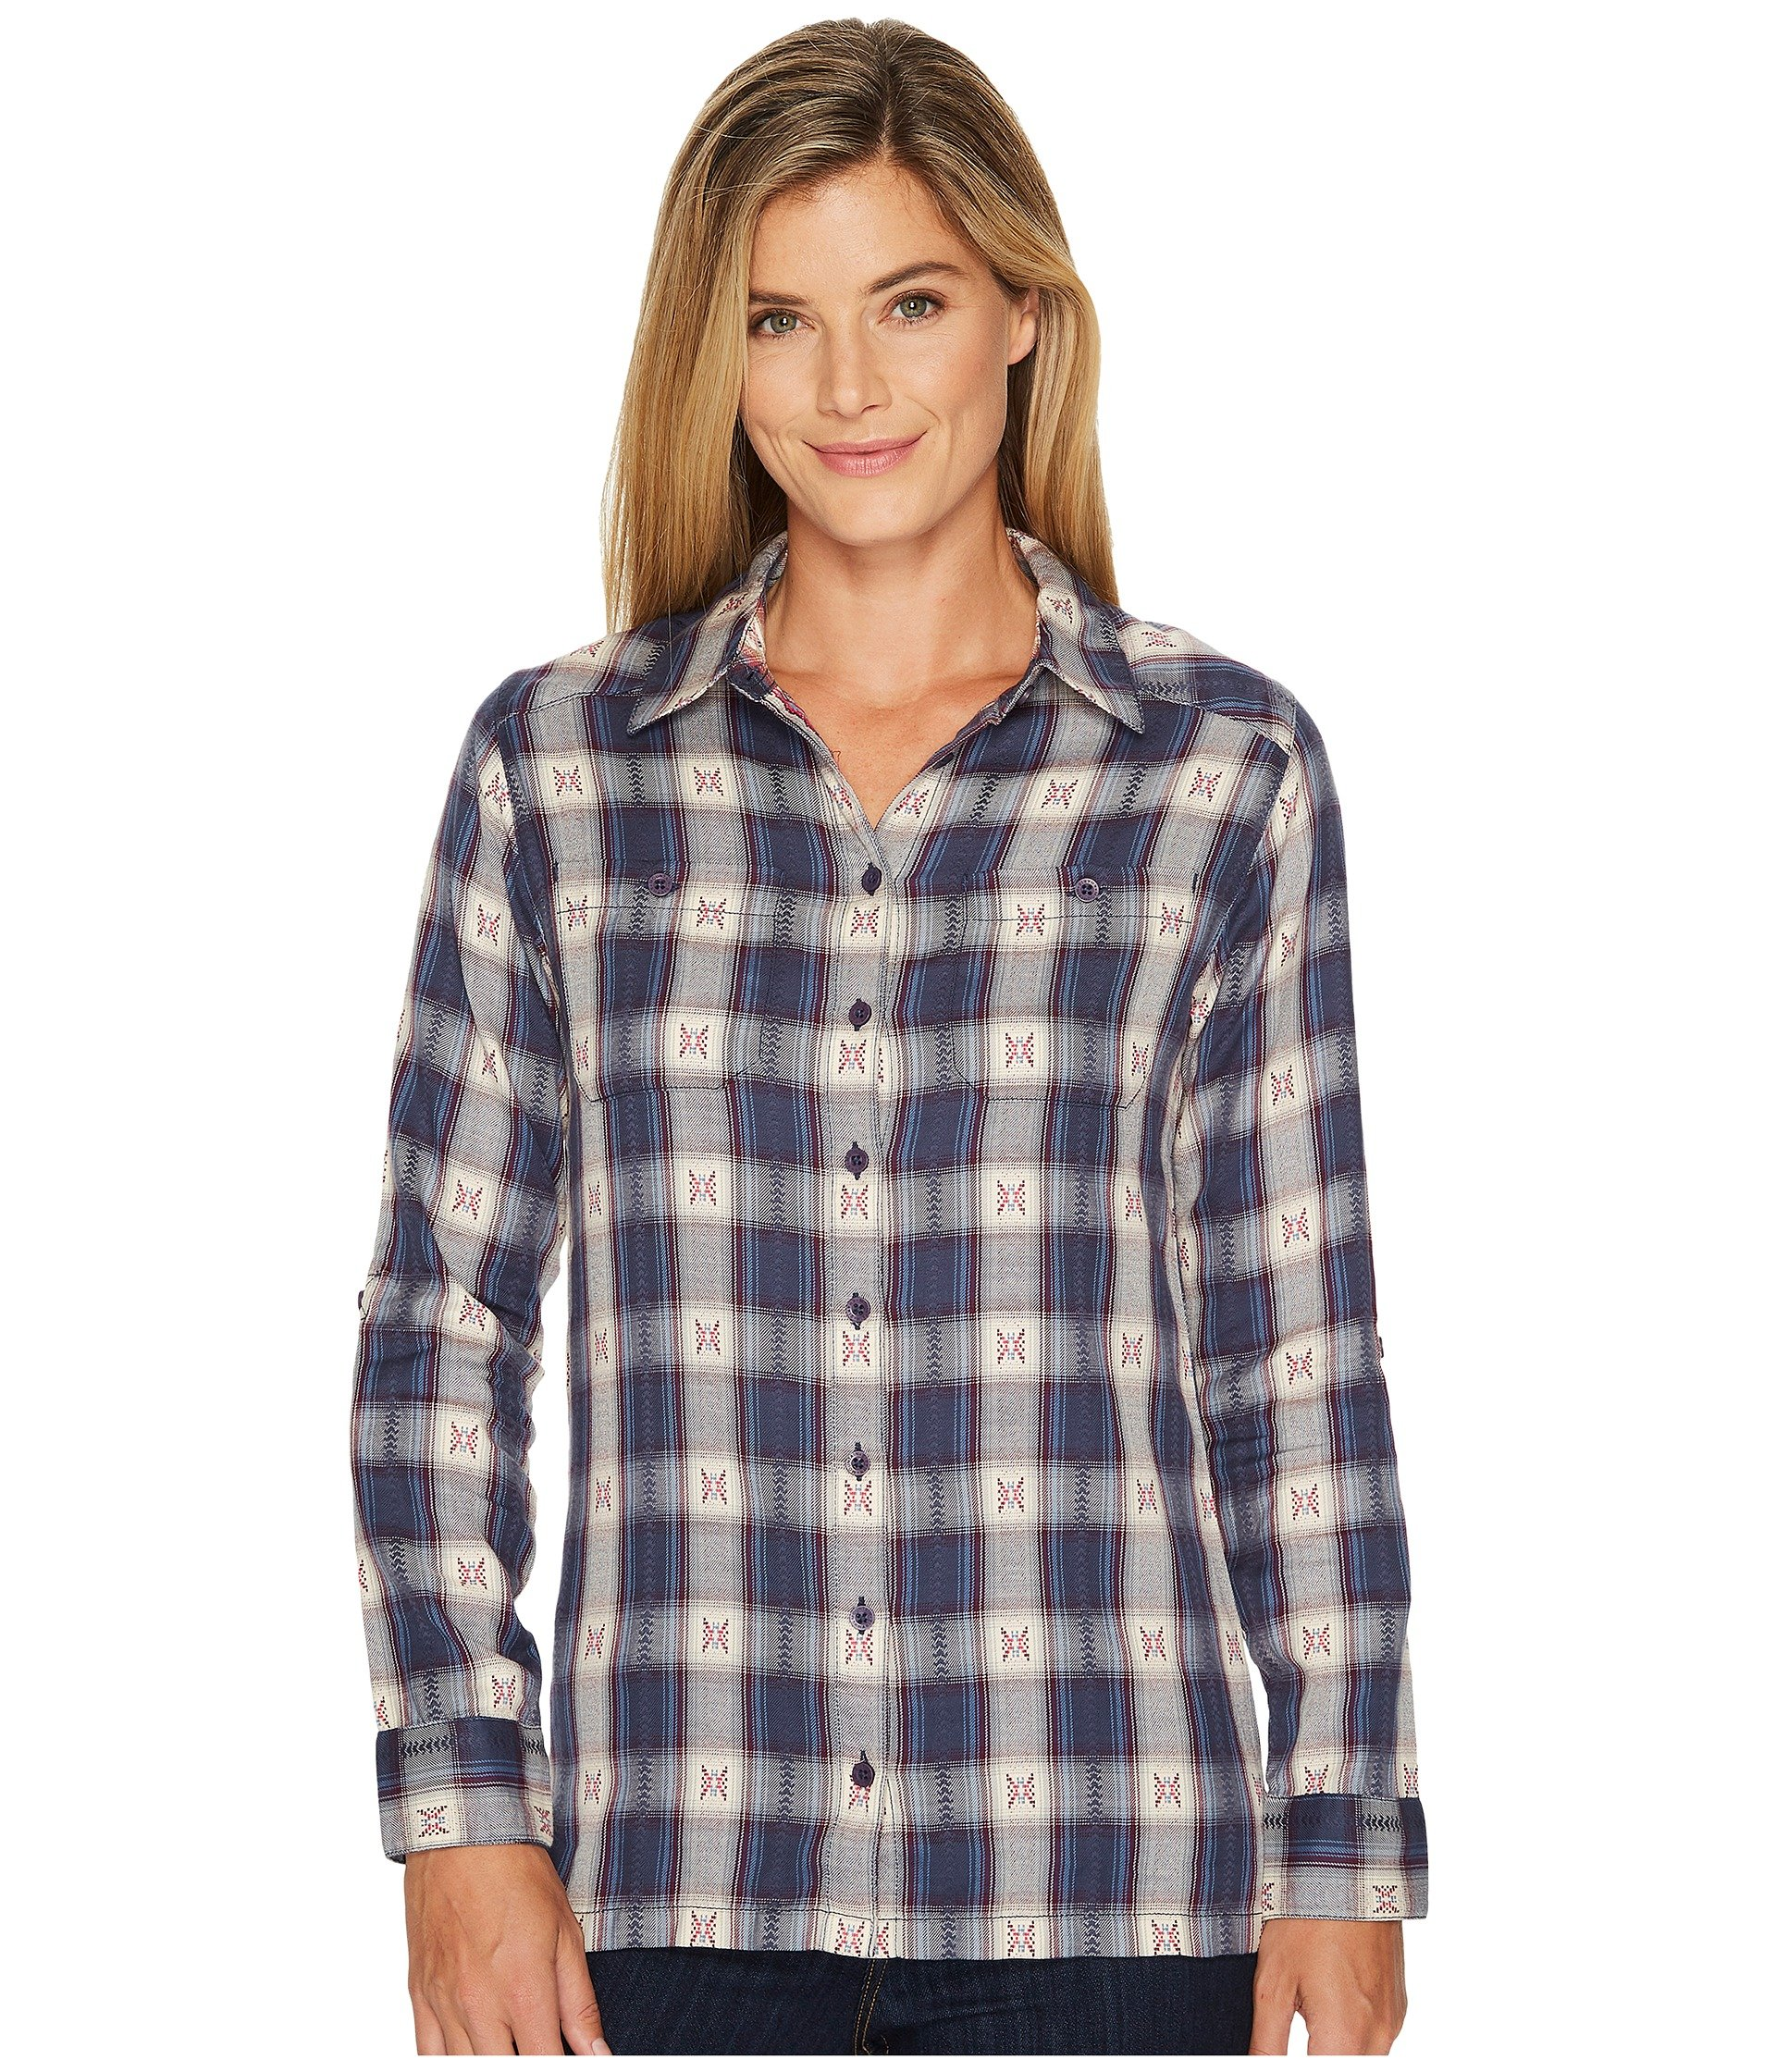 Shirts & Tops, Women, Flannel | Shipped Free at Zappos